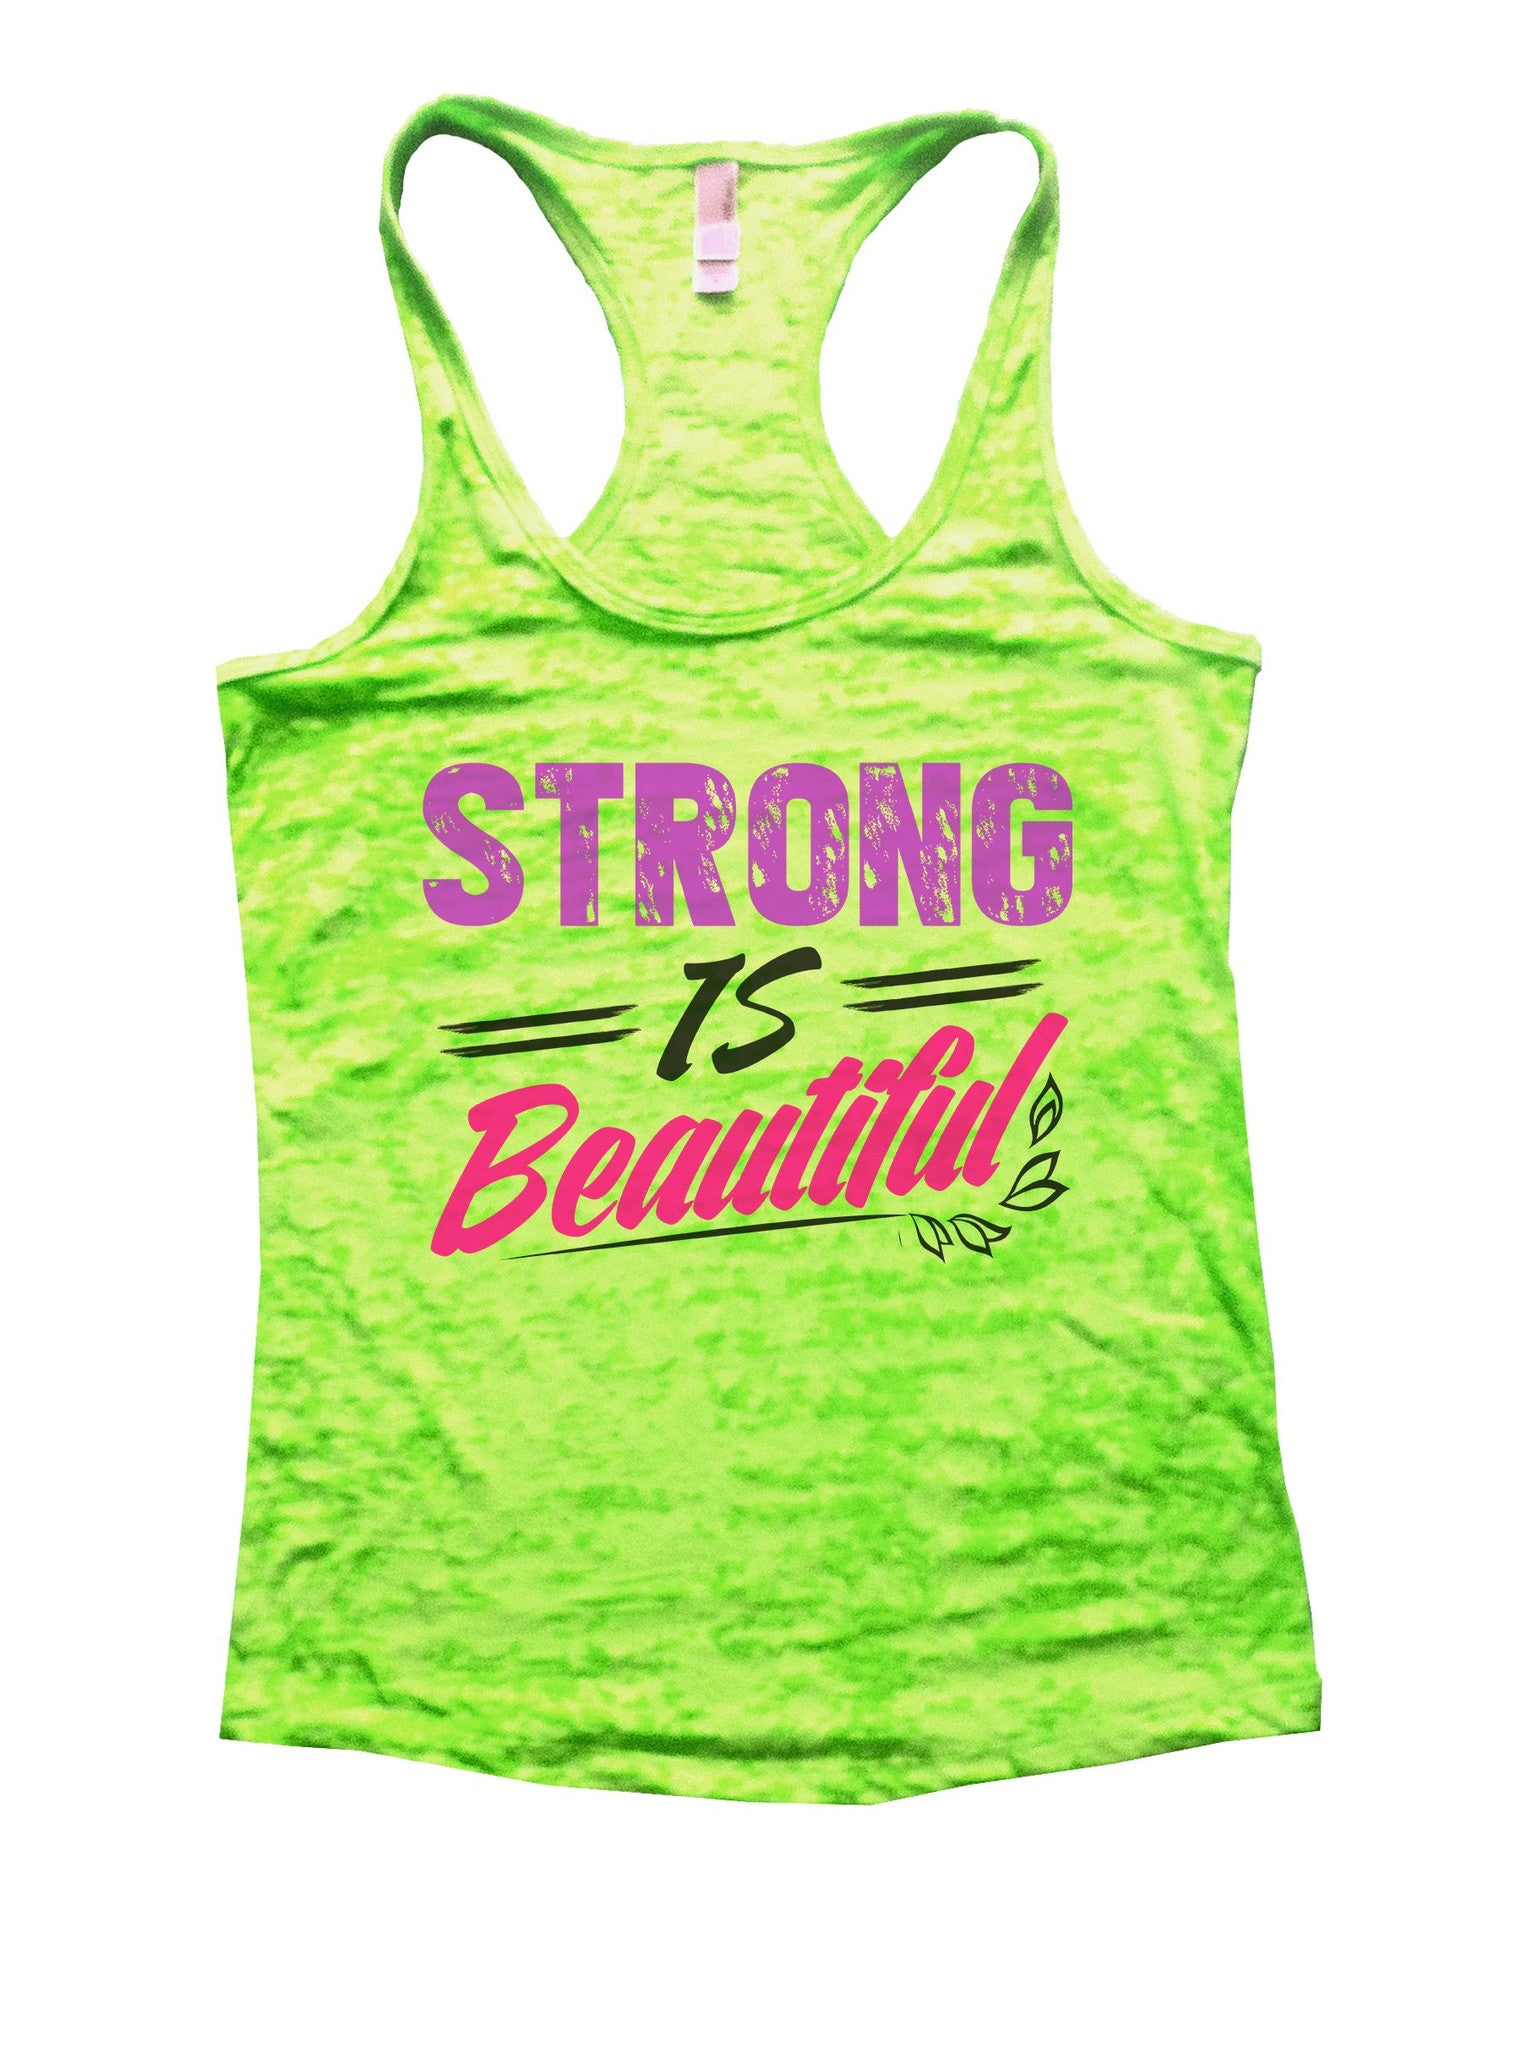 Strong Is Beautiful Burnout Tank Top By BurnoutTankTops.com - 1034 - Funny Shirts Tank Tops Burnouts and Triblends  - 1